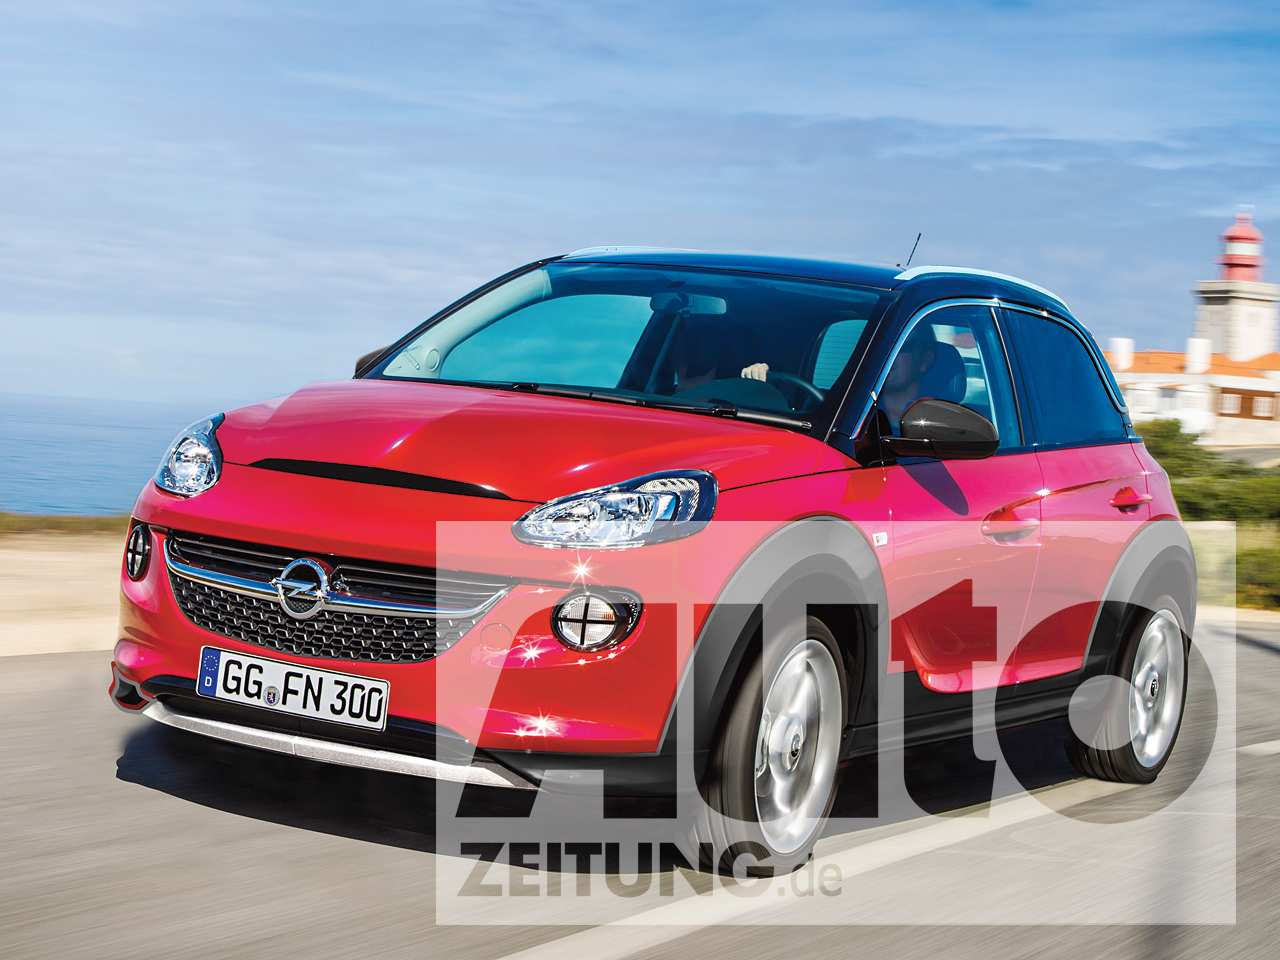 55 Best Review Neue Opel Bis 2020 Pictures by Neue Opel Bis 2020